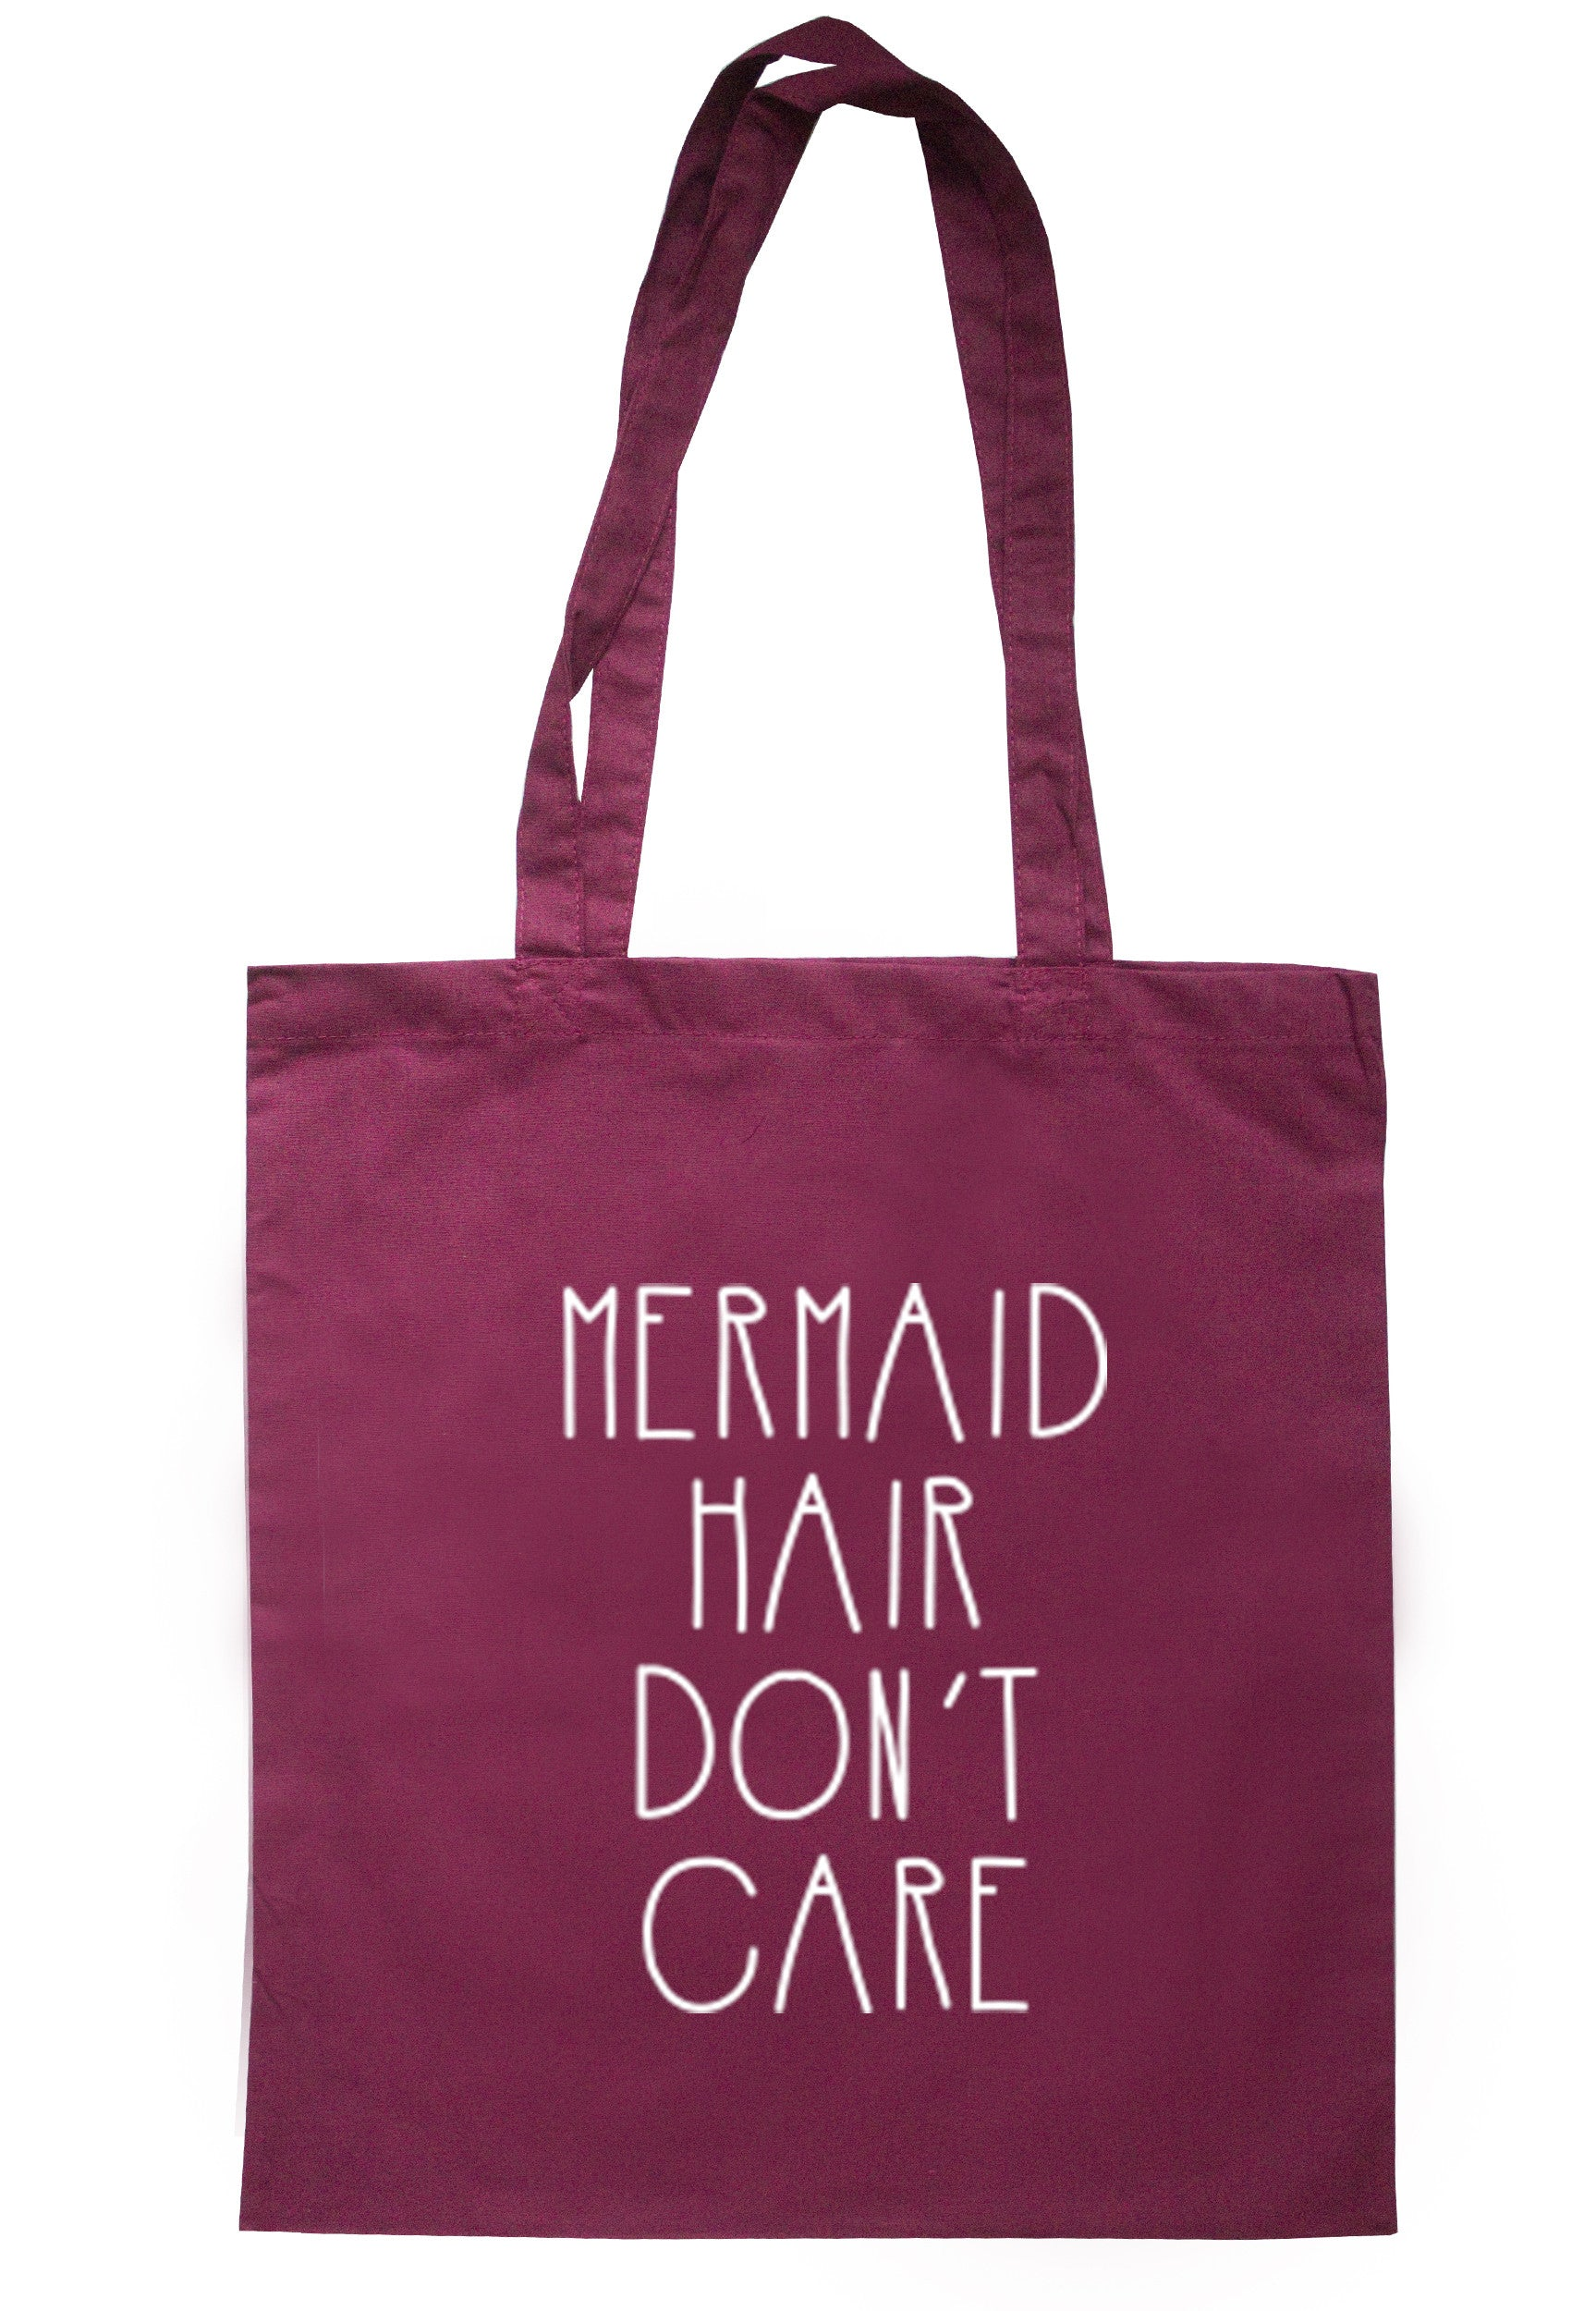 Mermaid Hair Don't Care Tote Bag TB0250 - Illustrated Identity Ltd.